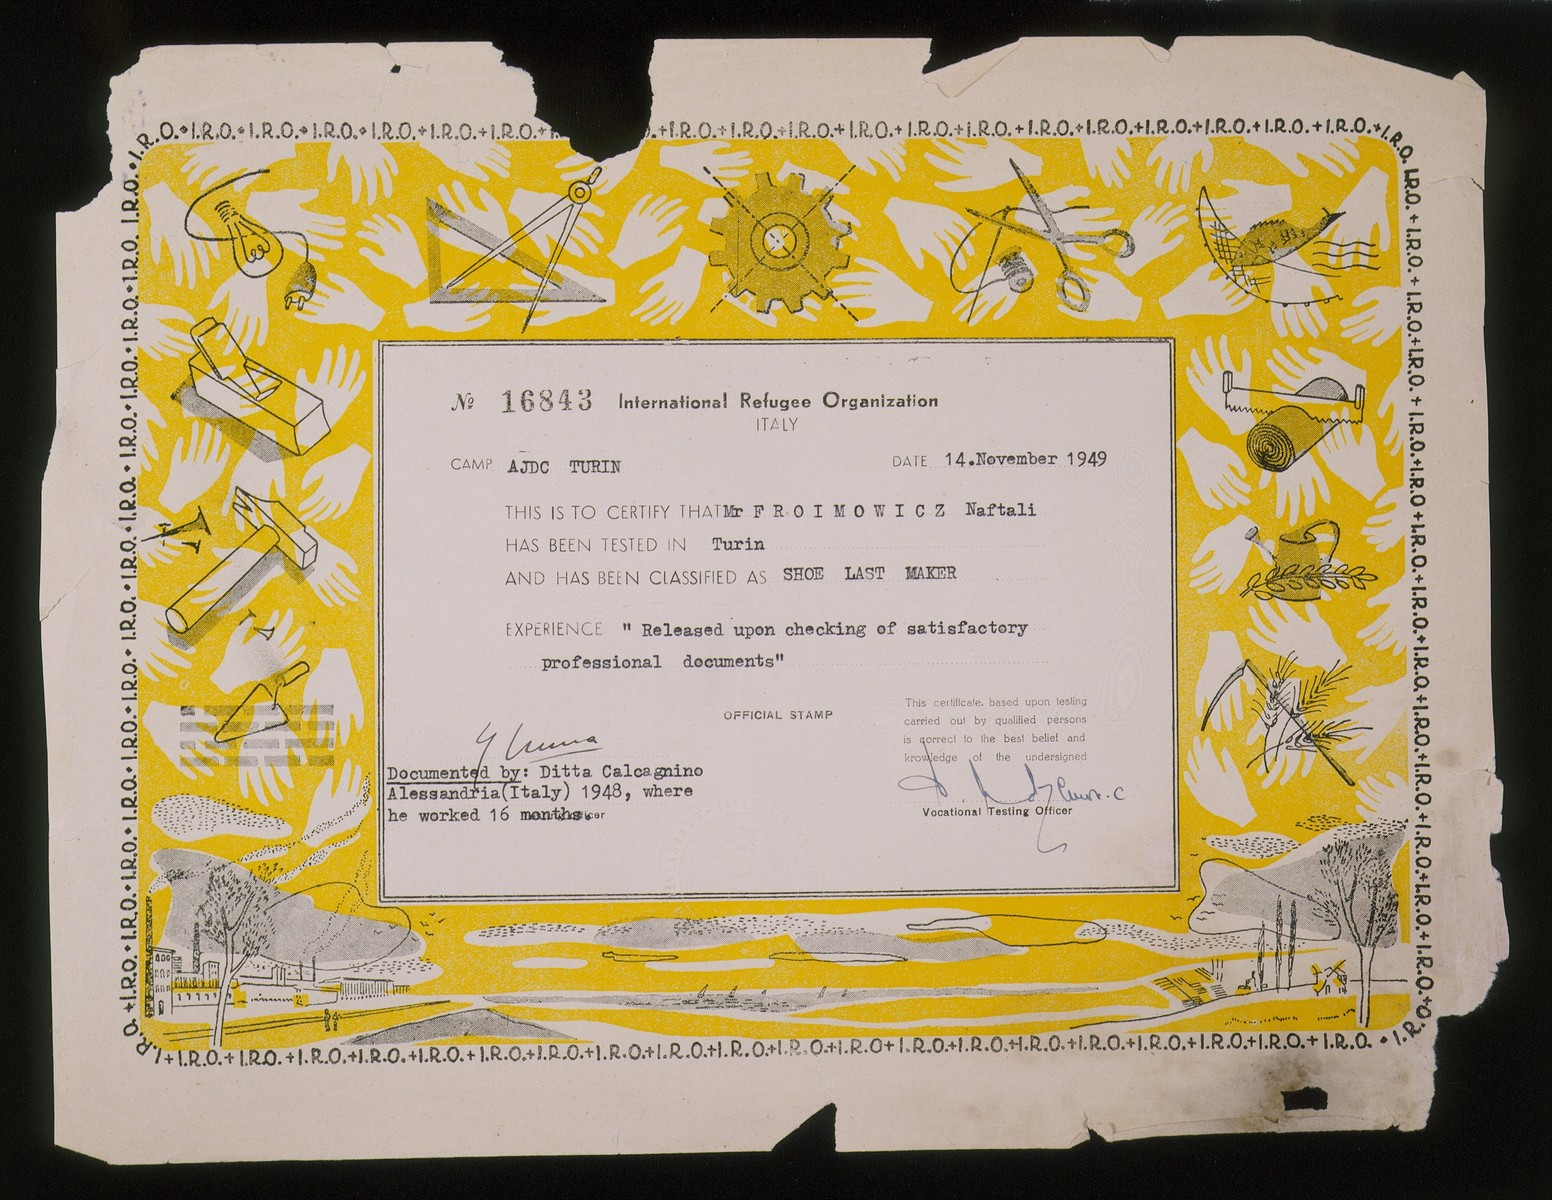 A diploma from International Refugee Organization (IRO) certifying that Naftali Froimowicz is trained as a shoemaker.